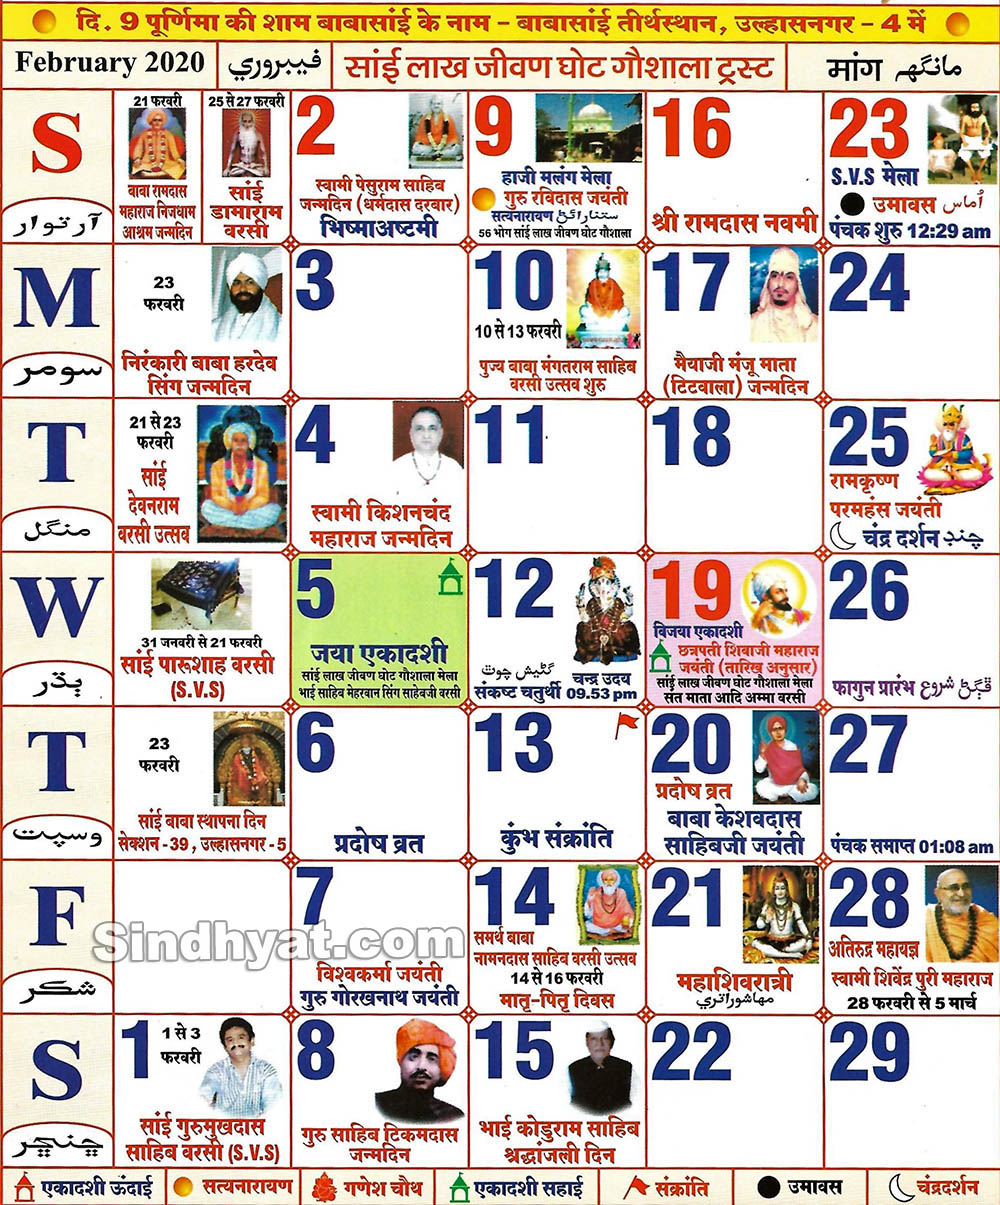 Sindhi Calendar for the month of February, 2020